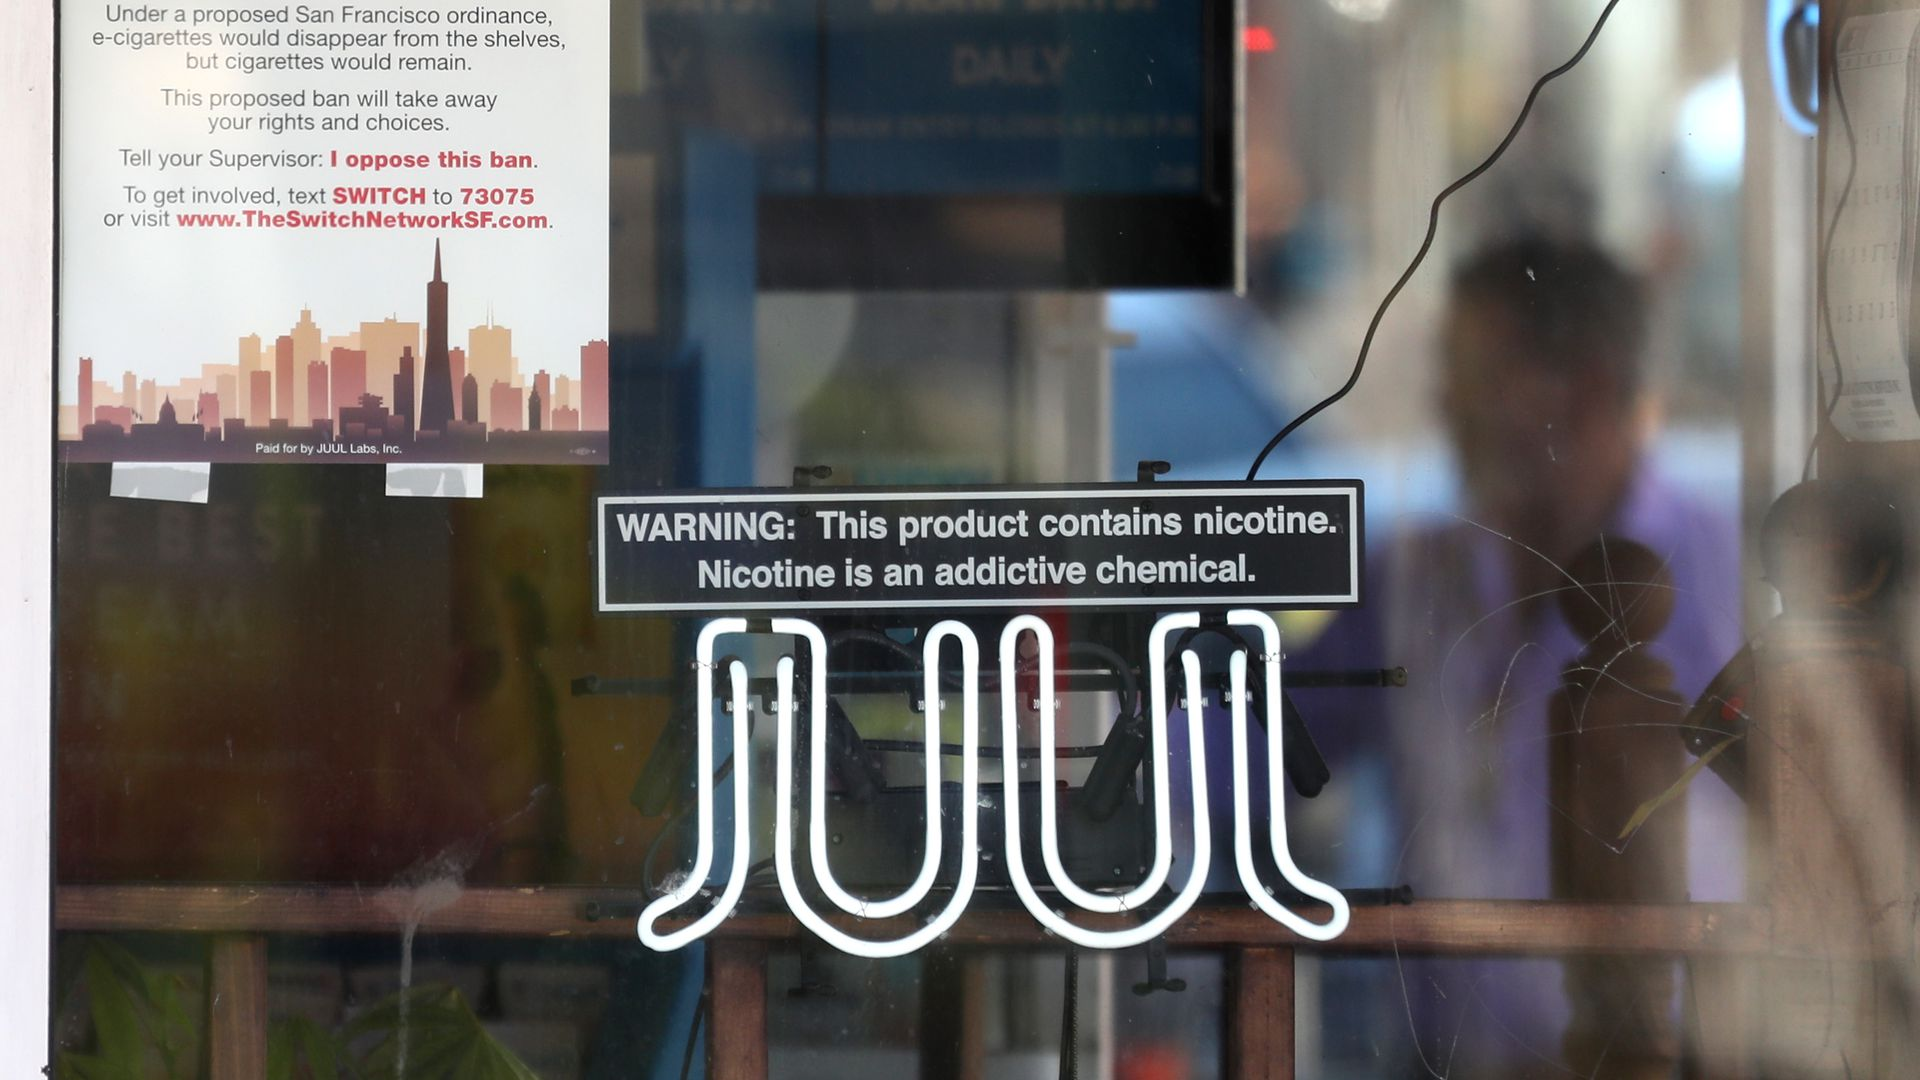 A neon sign advertising Juul e-cigarettes.